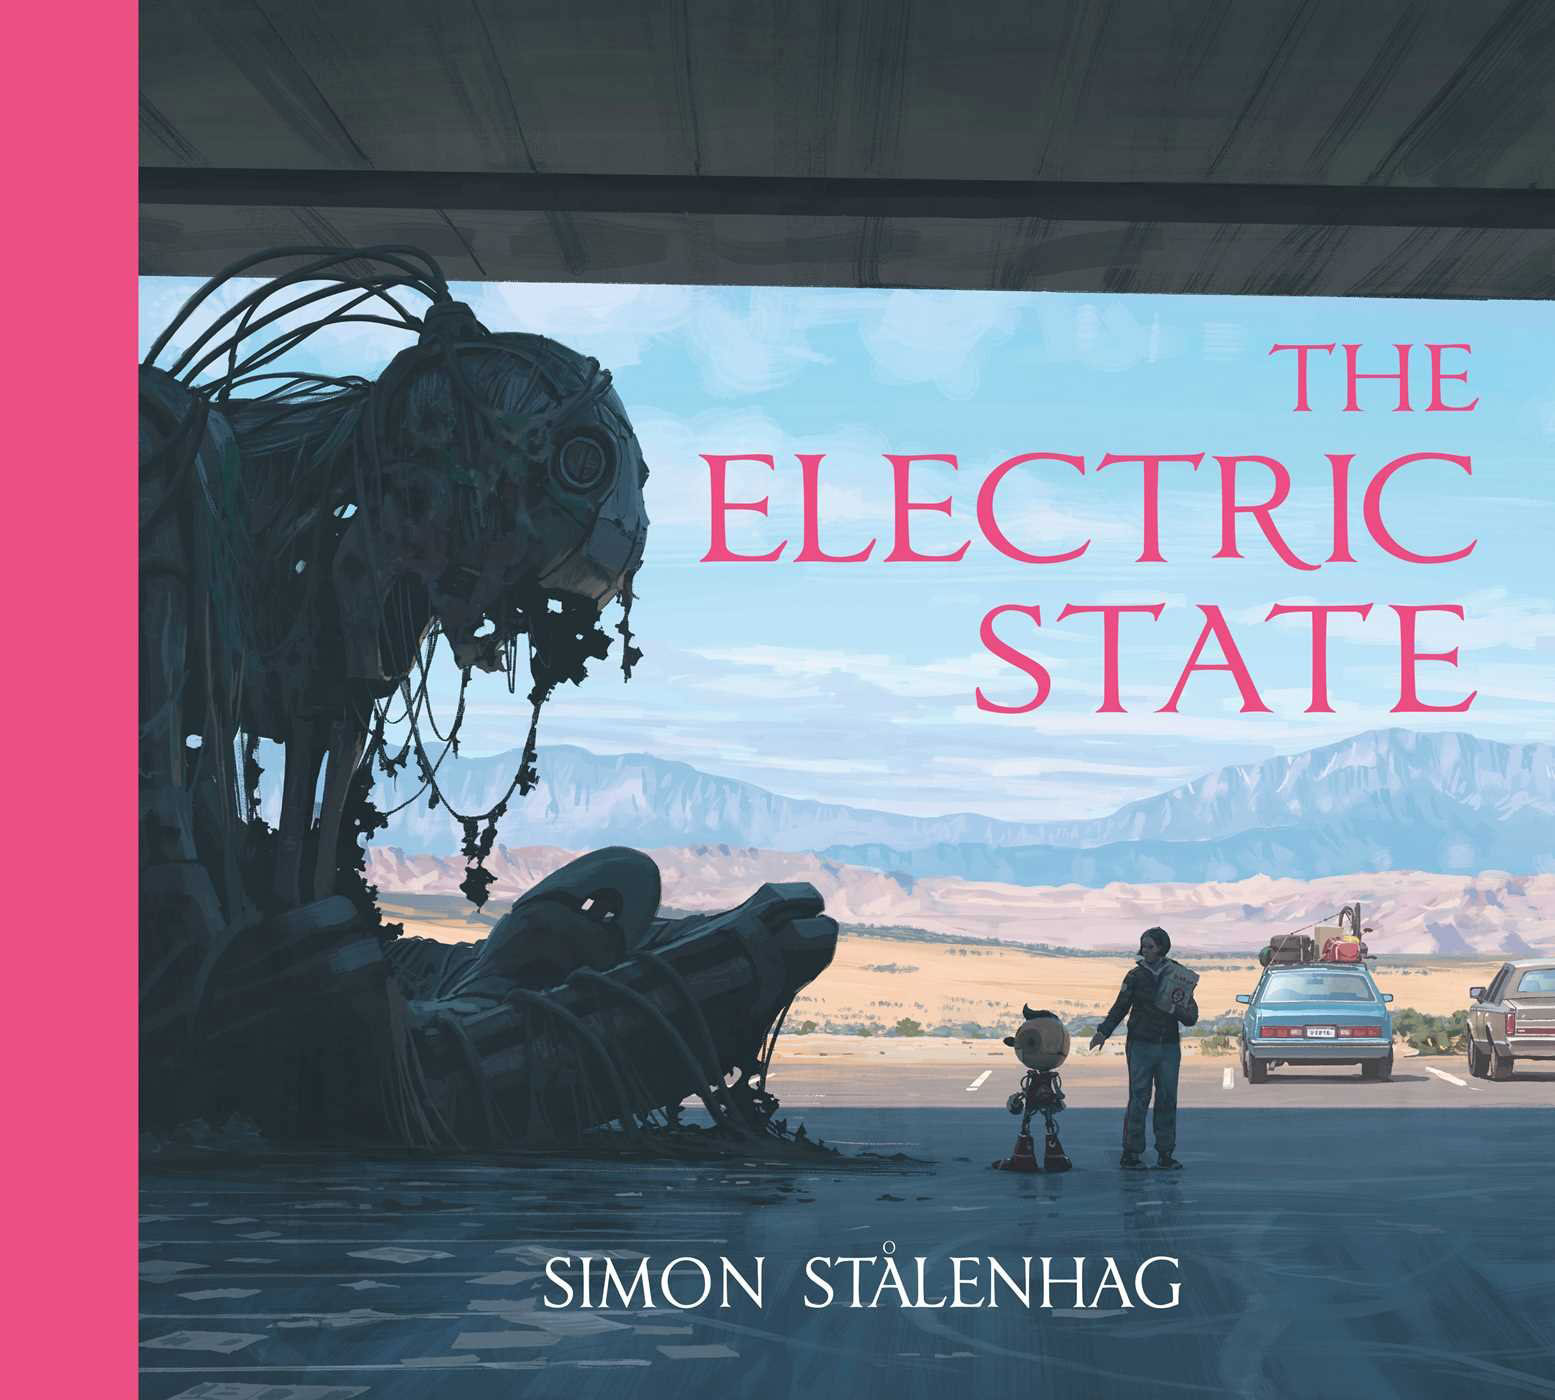 The Electric State por Simon Stålenhag